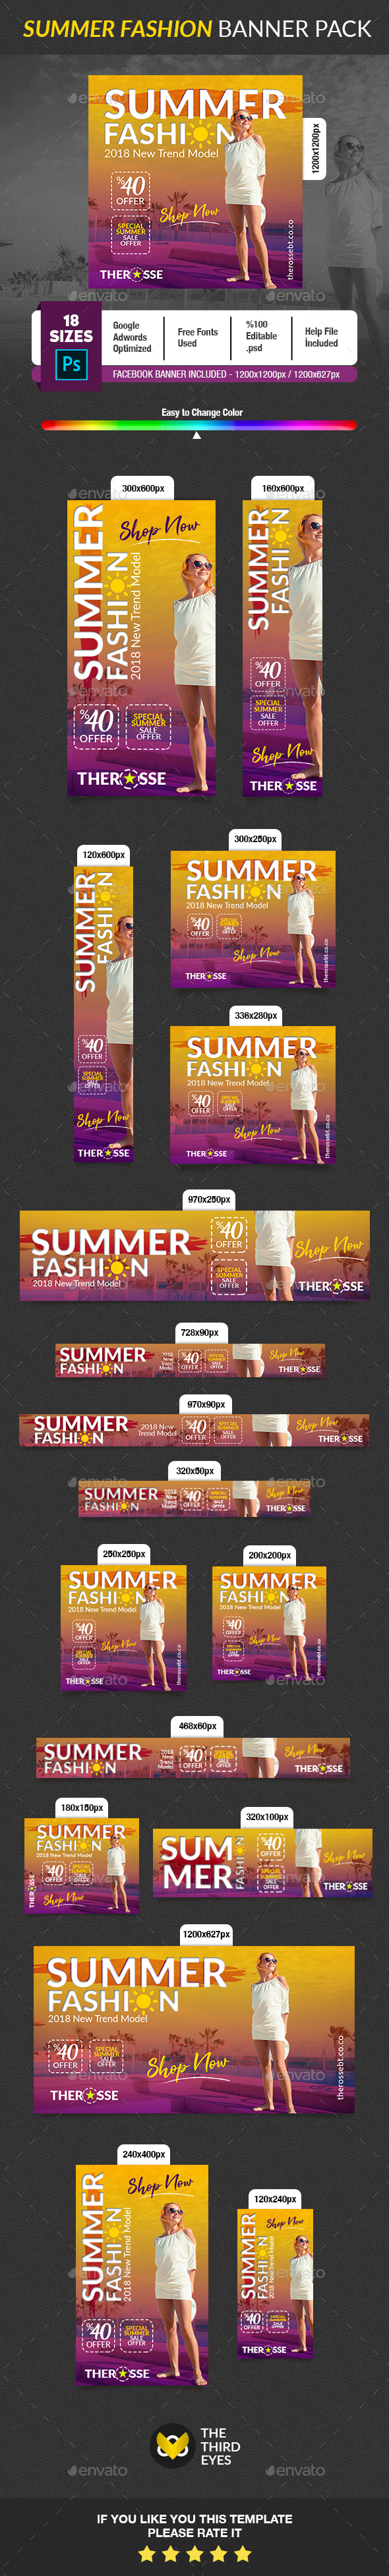 Summer Fashion Banner - Banners & Ads Web Elements